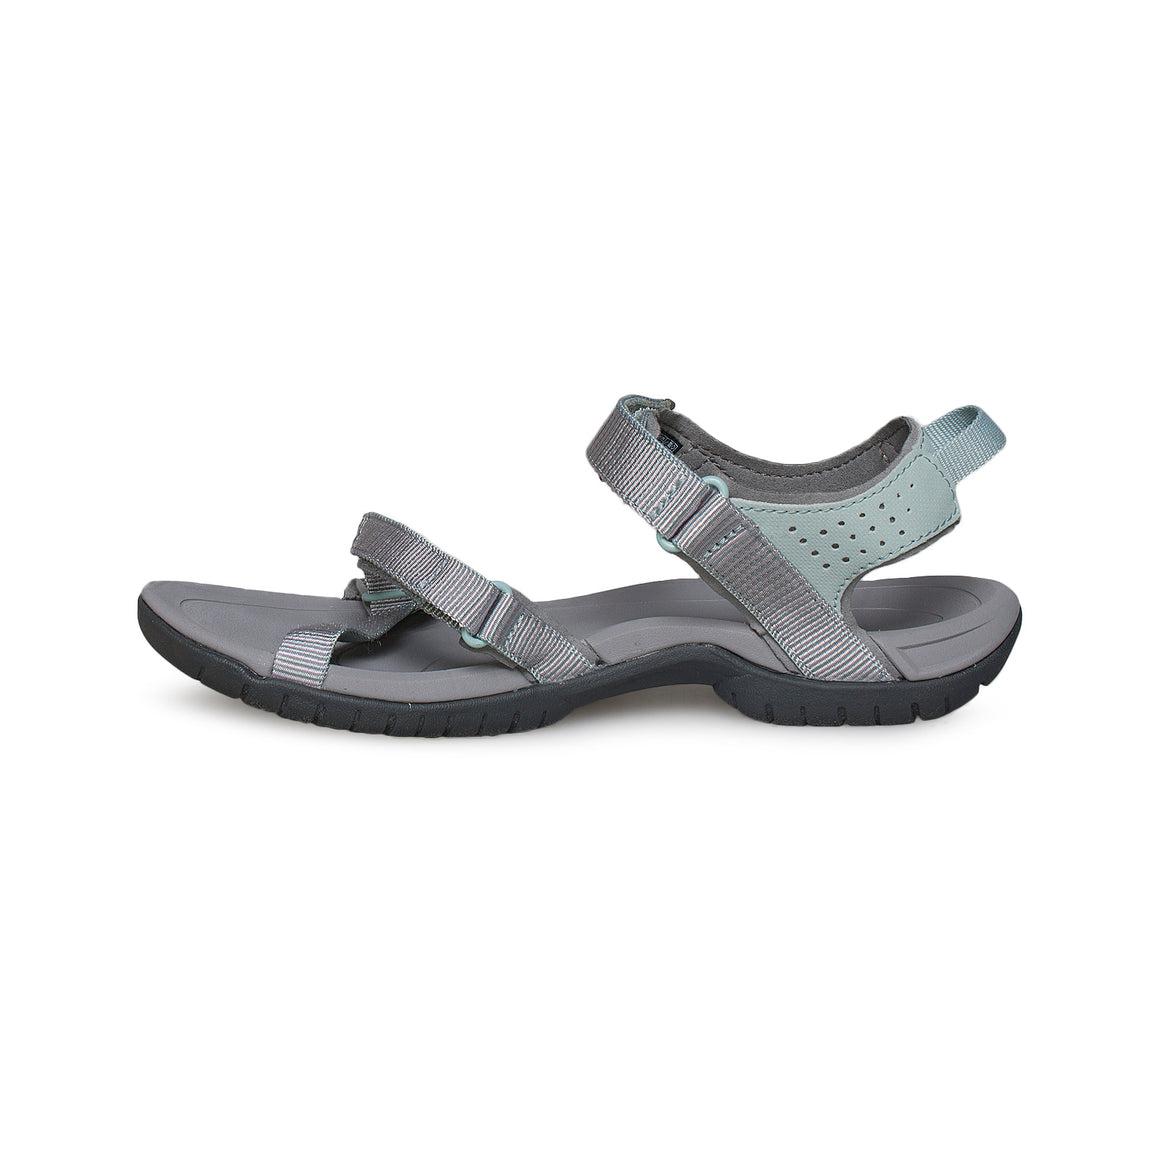 Teva Verra Spili Ladder Gray Mist Sandals - Women's